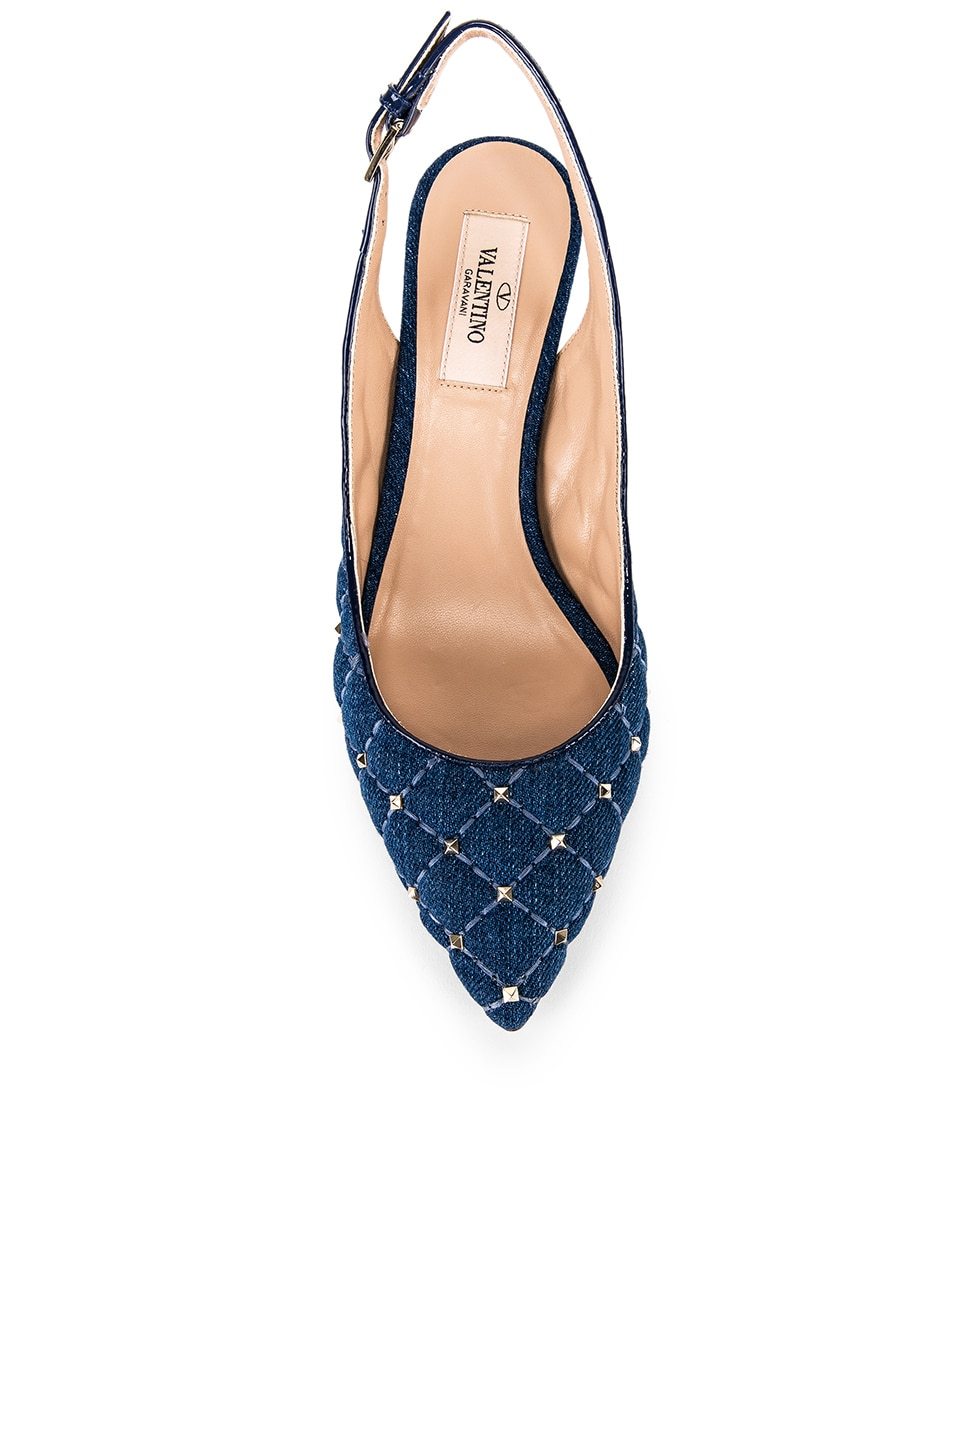 Image 4 of Valentino Rockstud Spike Sling Back Heels in Light Denim